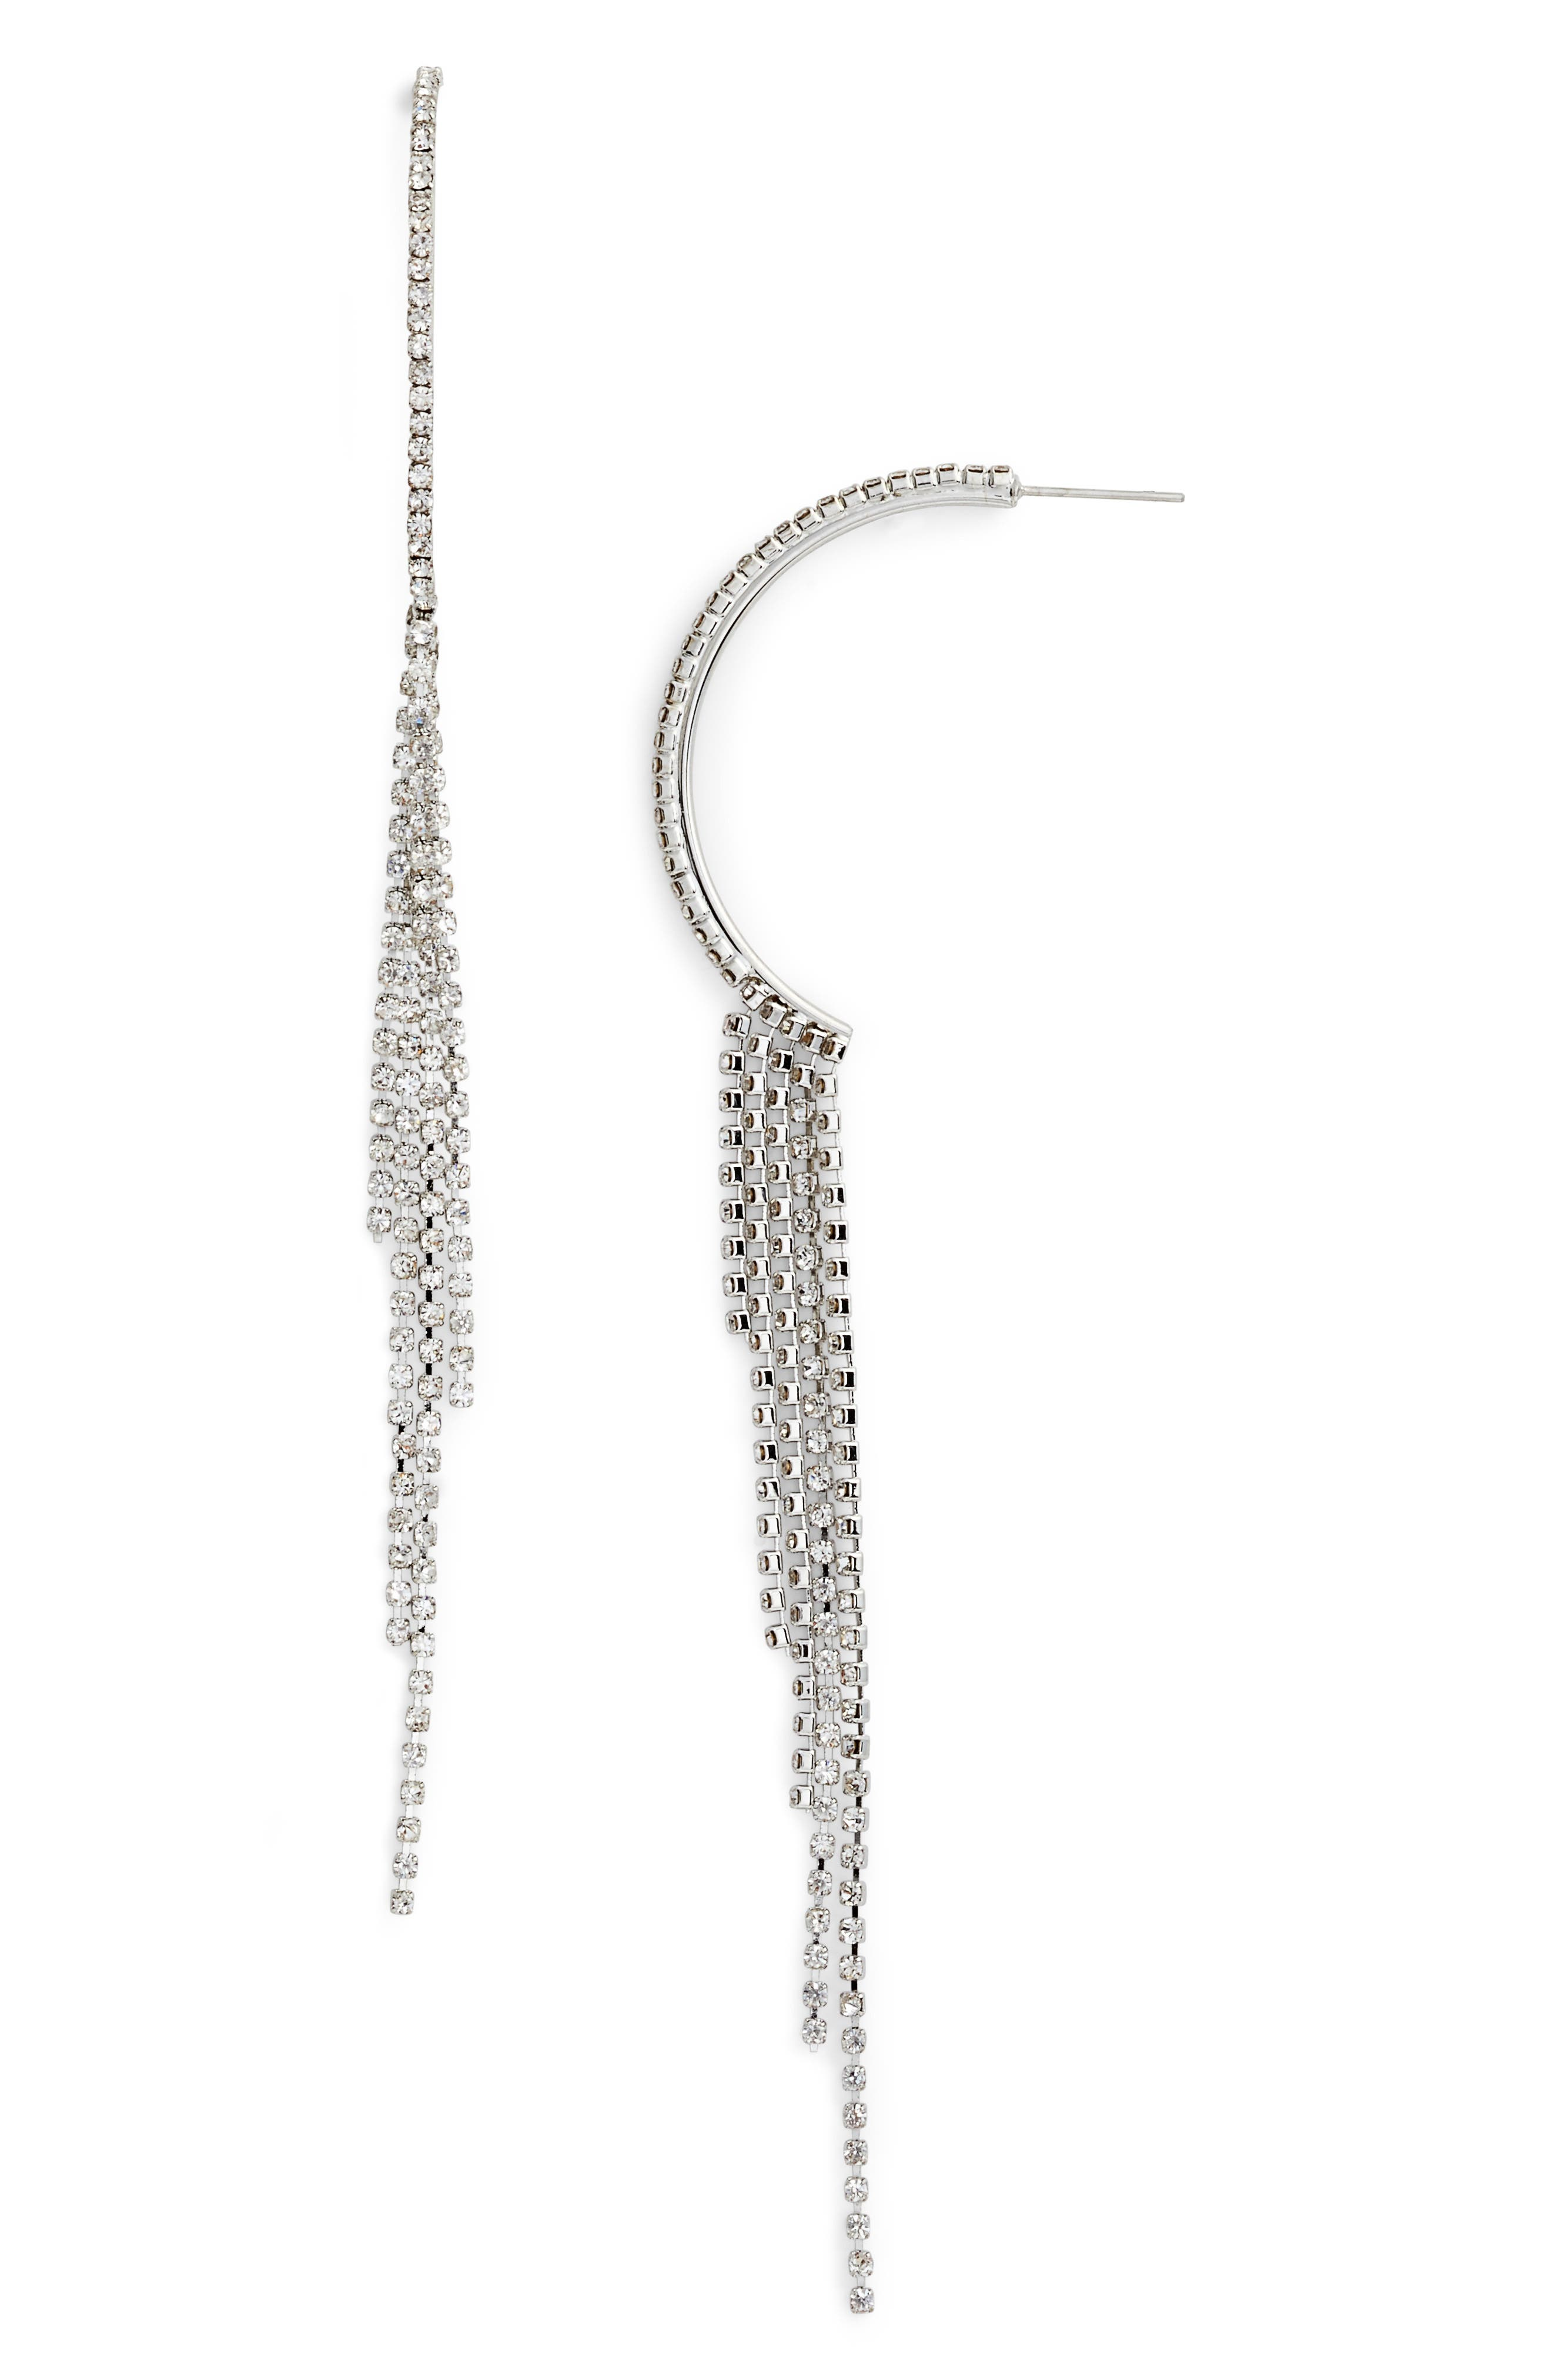 Crystal Fringe Earrings,                         Main,                         color, Clear/ Silver